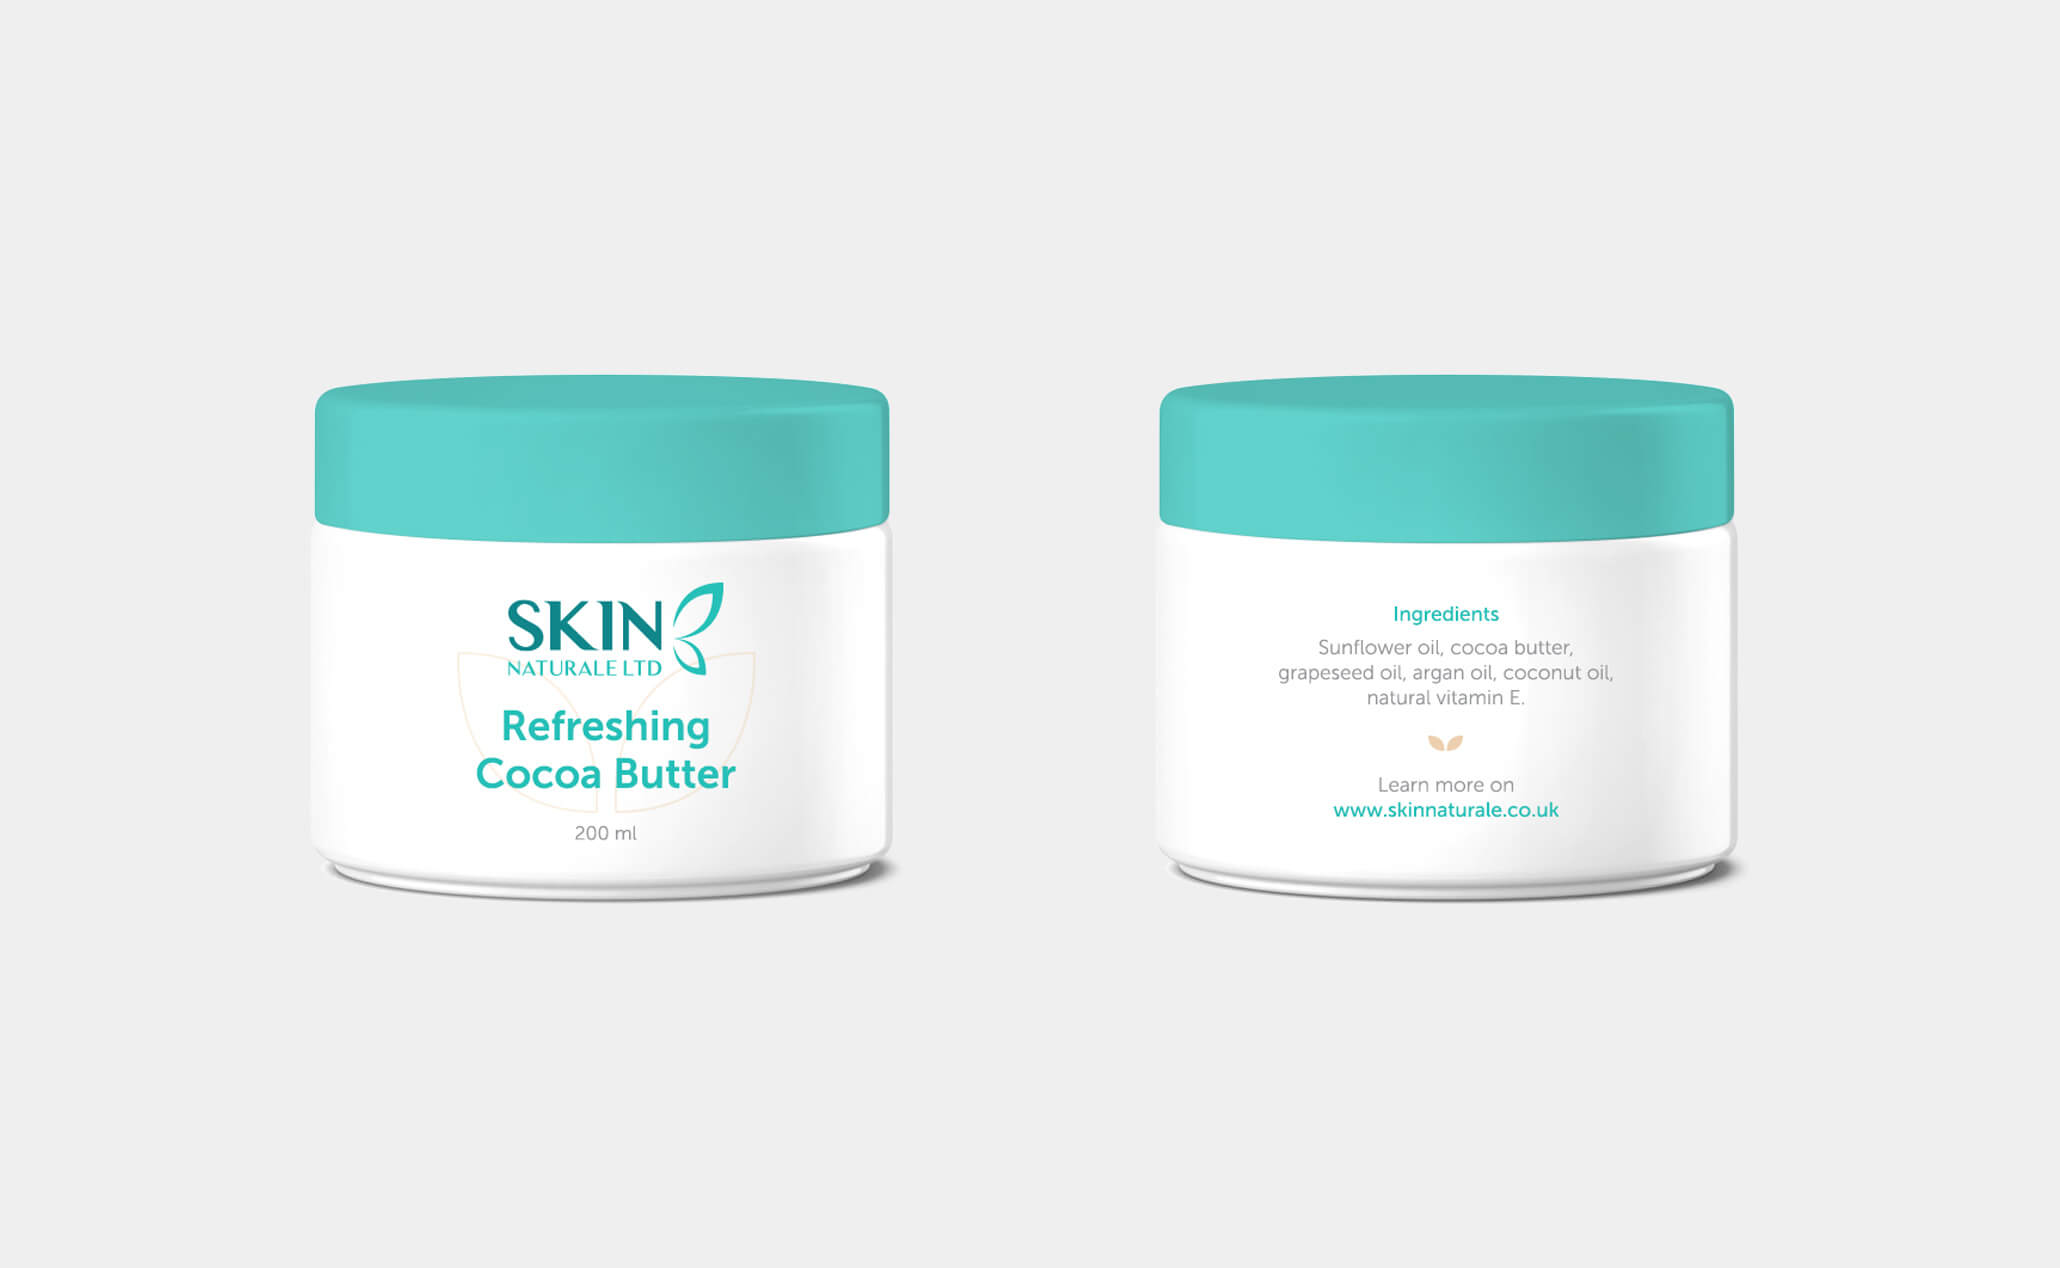 Skin Naturale - product packaging